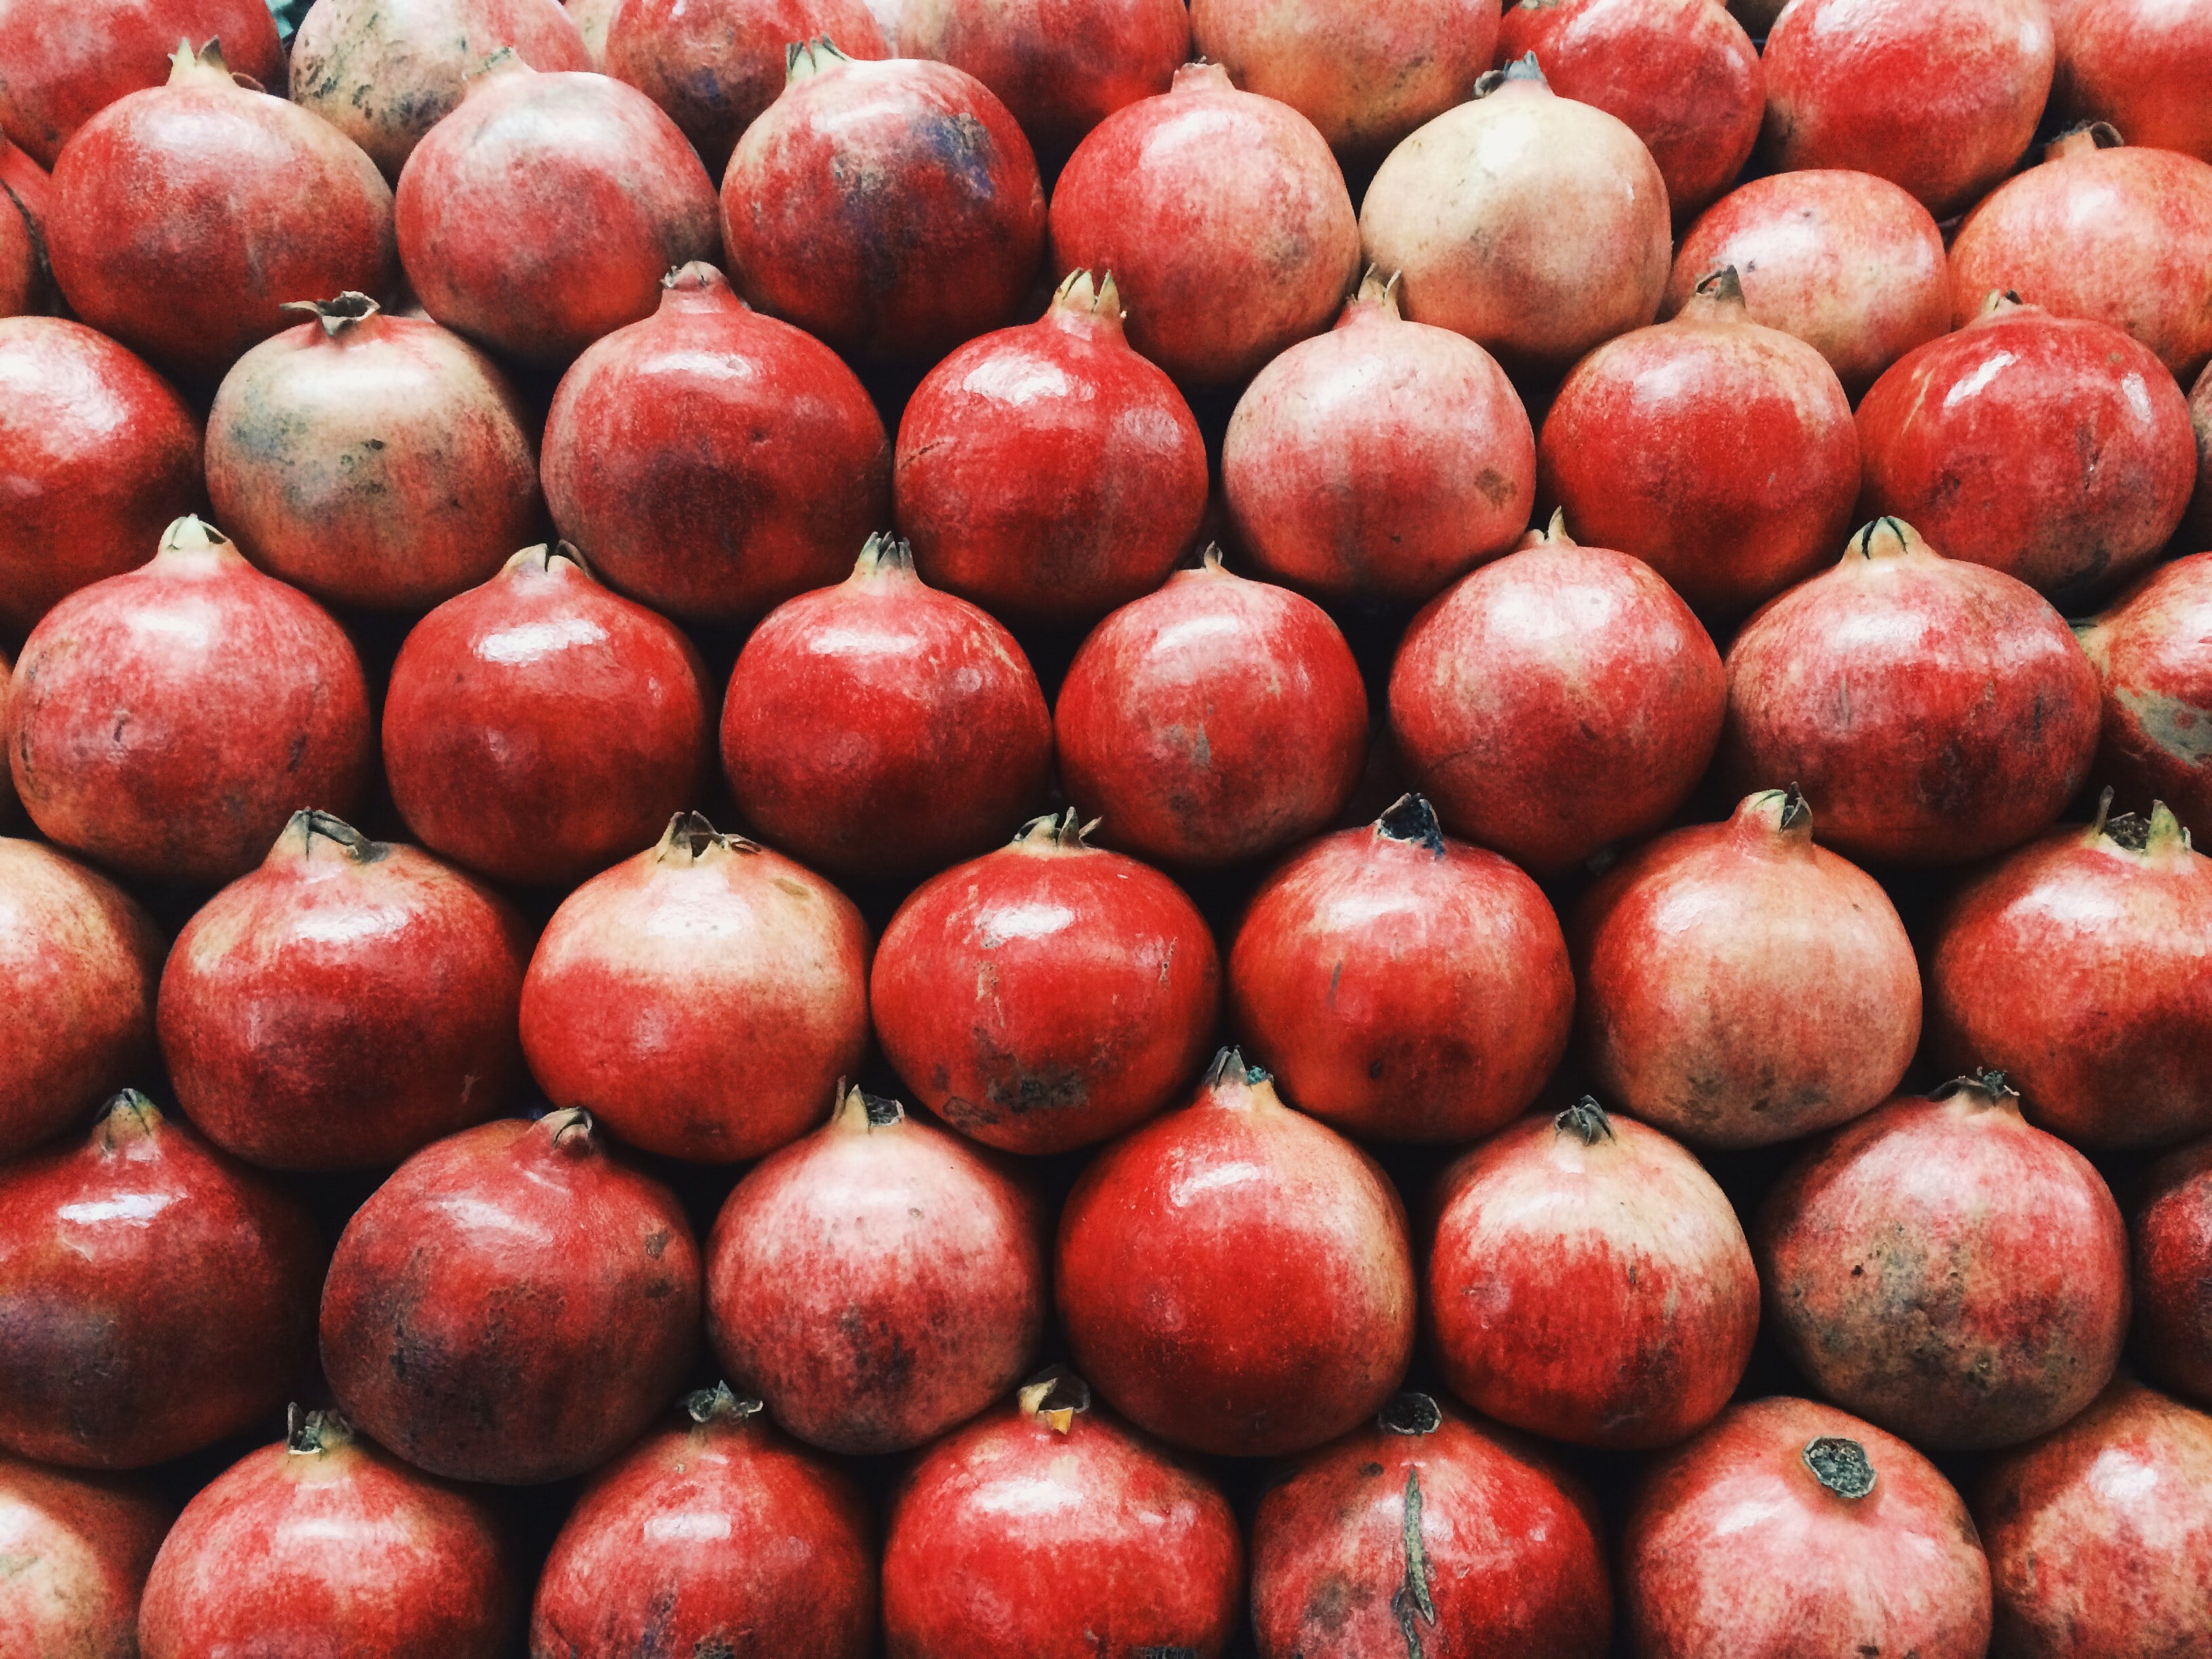 bunch of pomegranate fruits